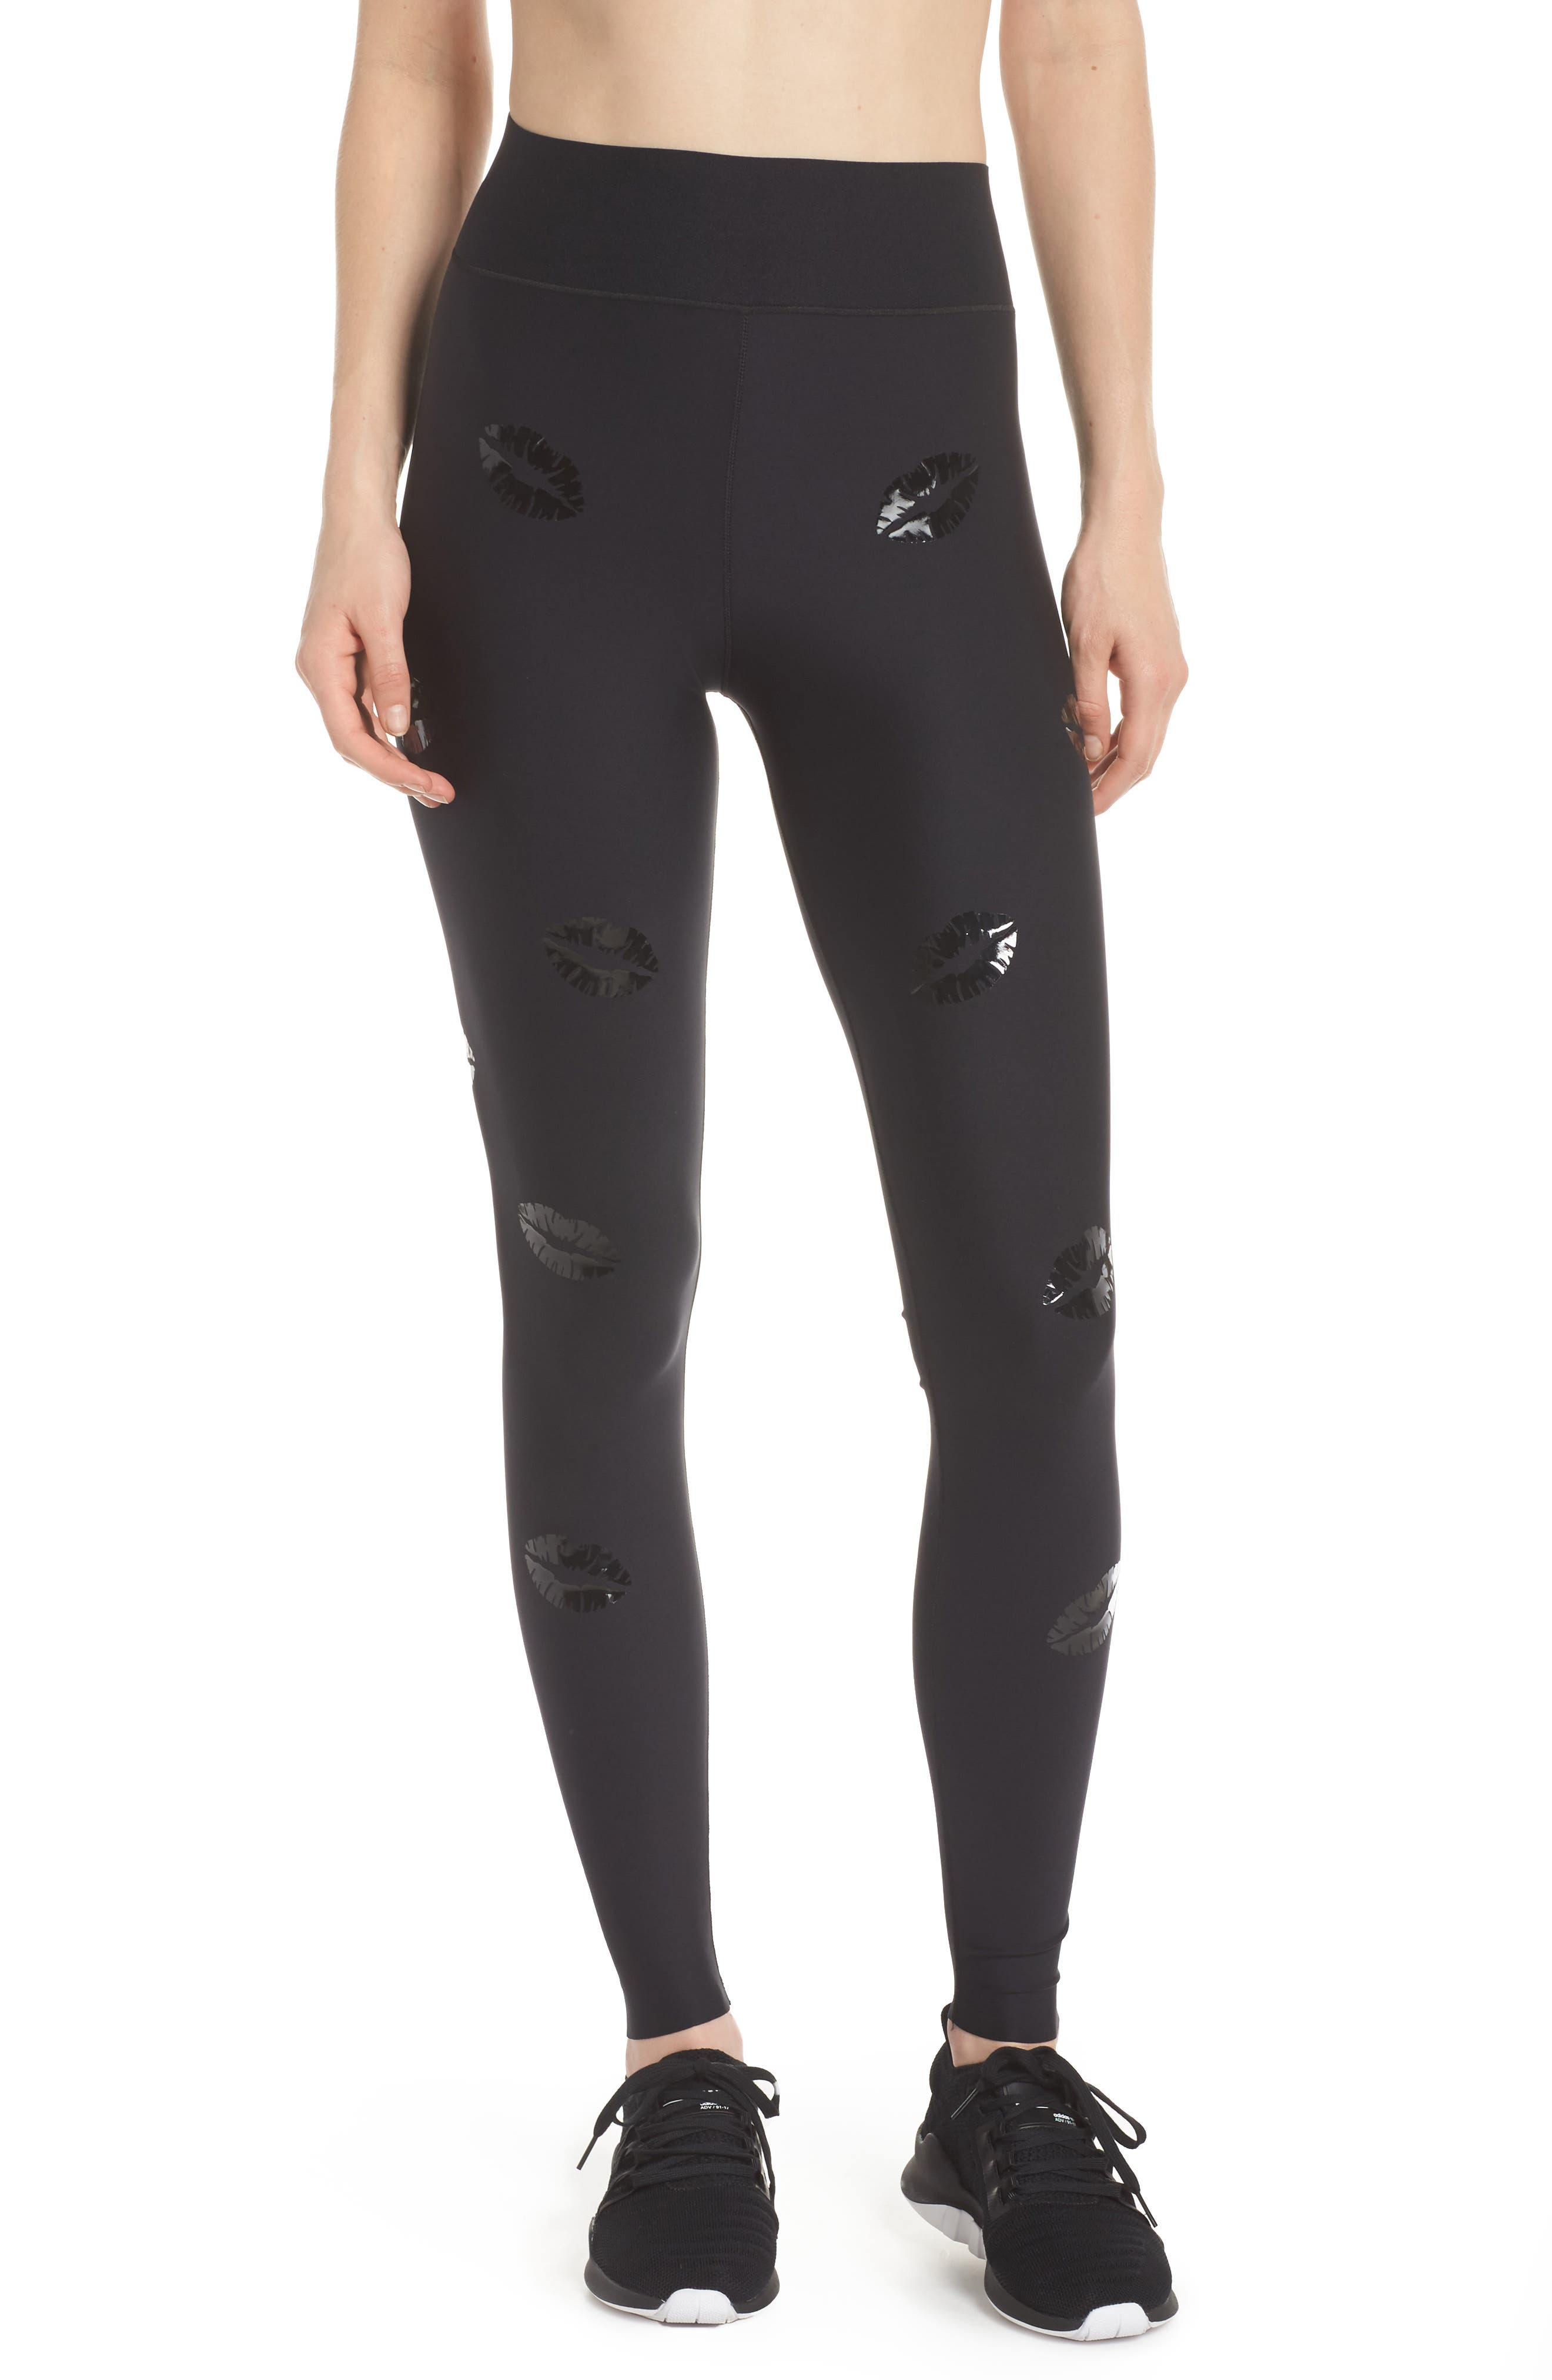 Make Out Lux High Waist Leggings,                             Main thumbnail 1, color,                             002